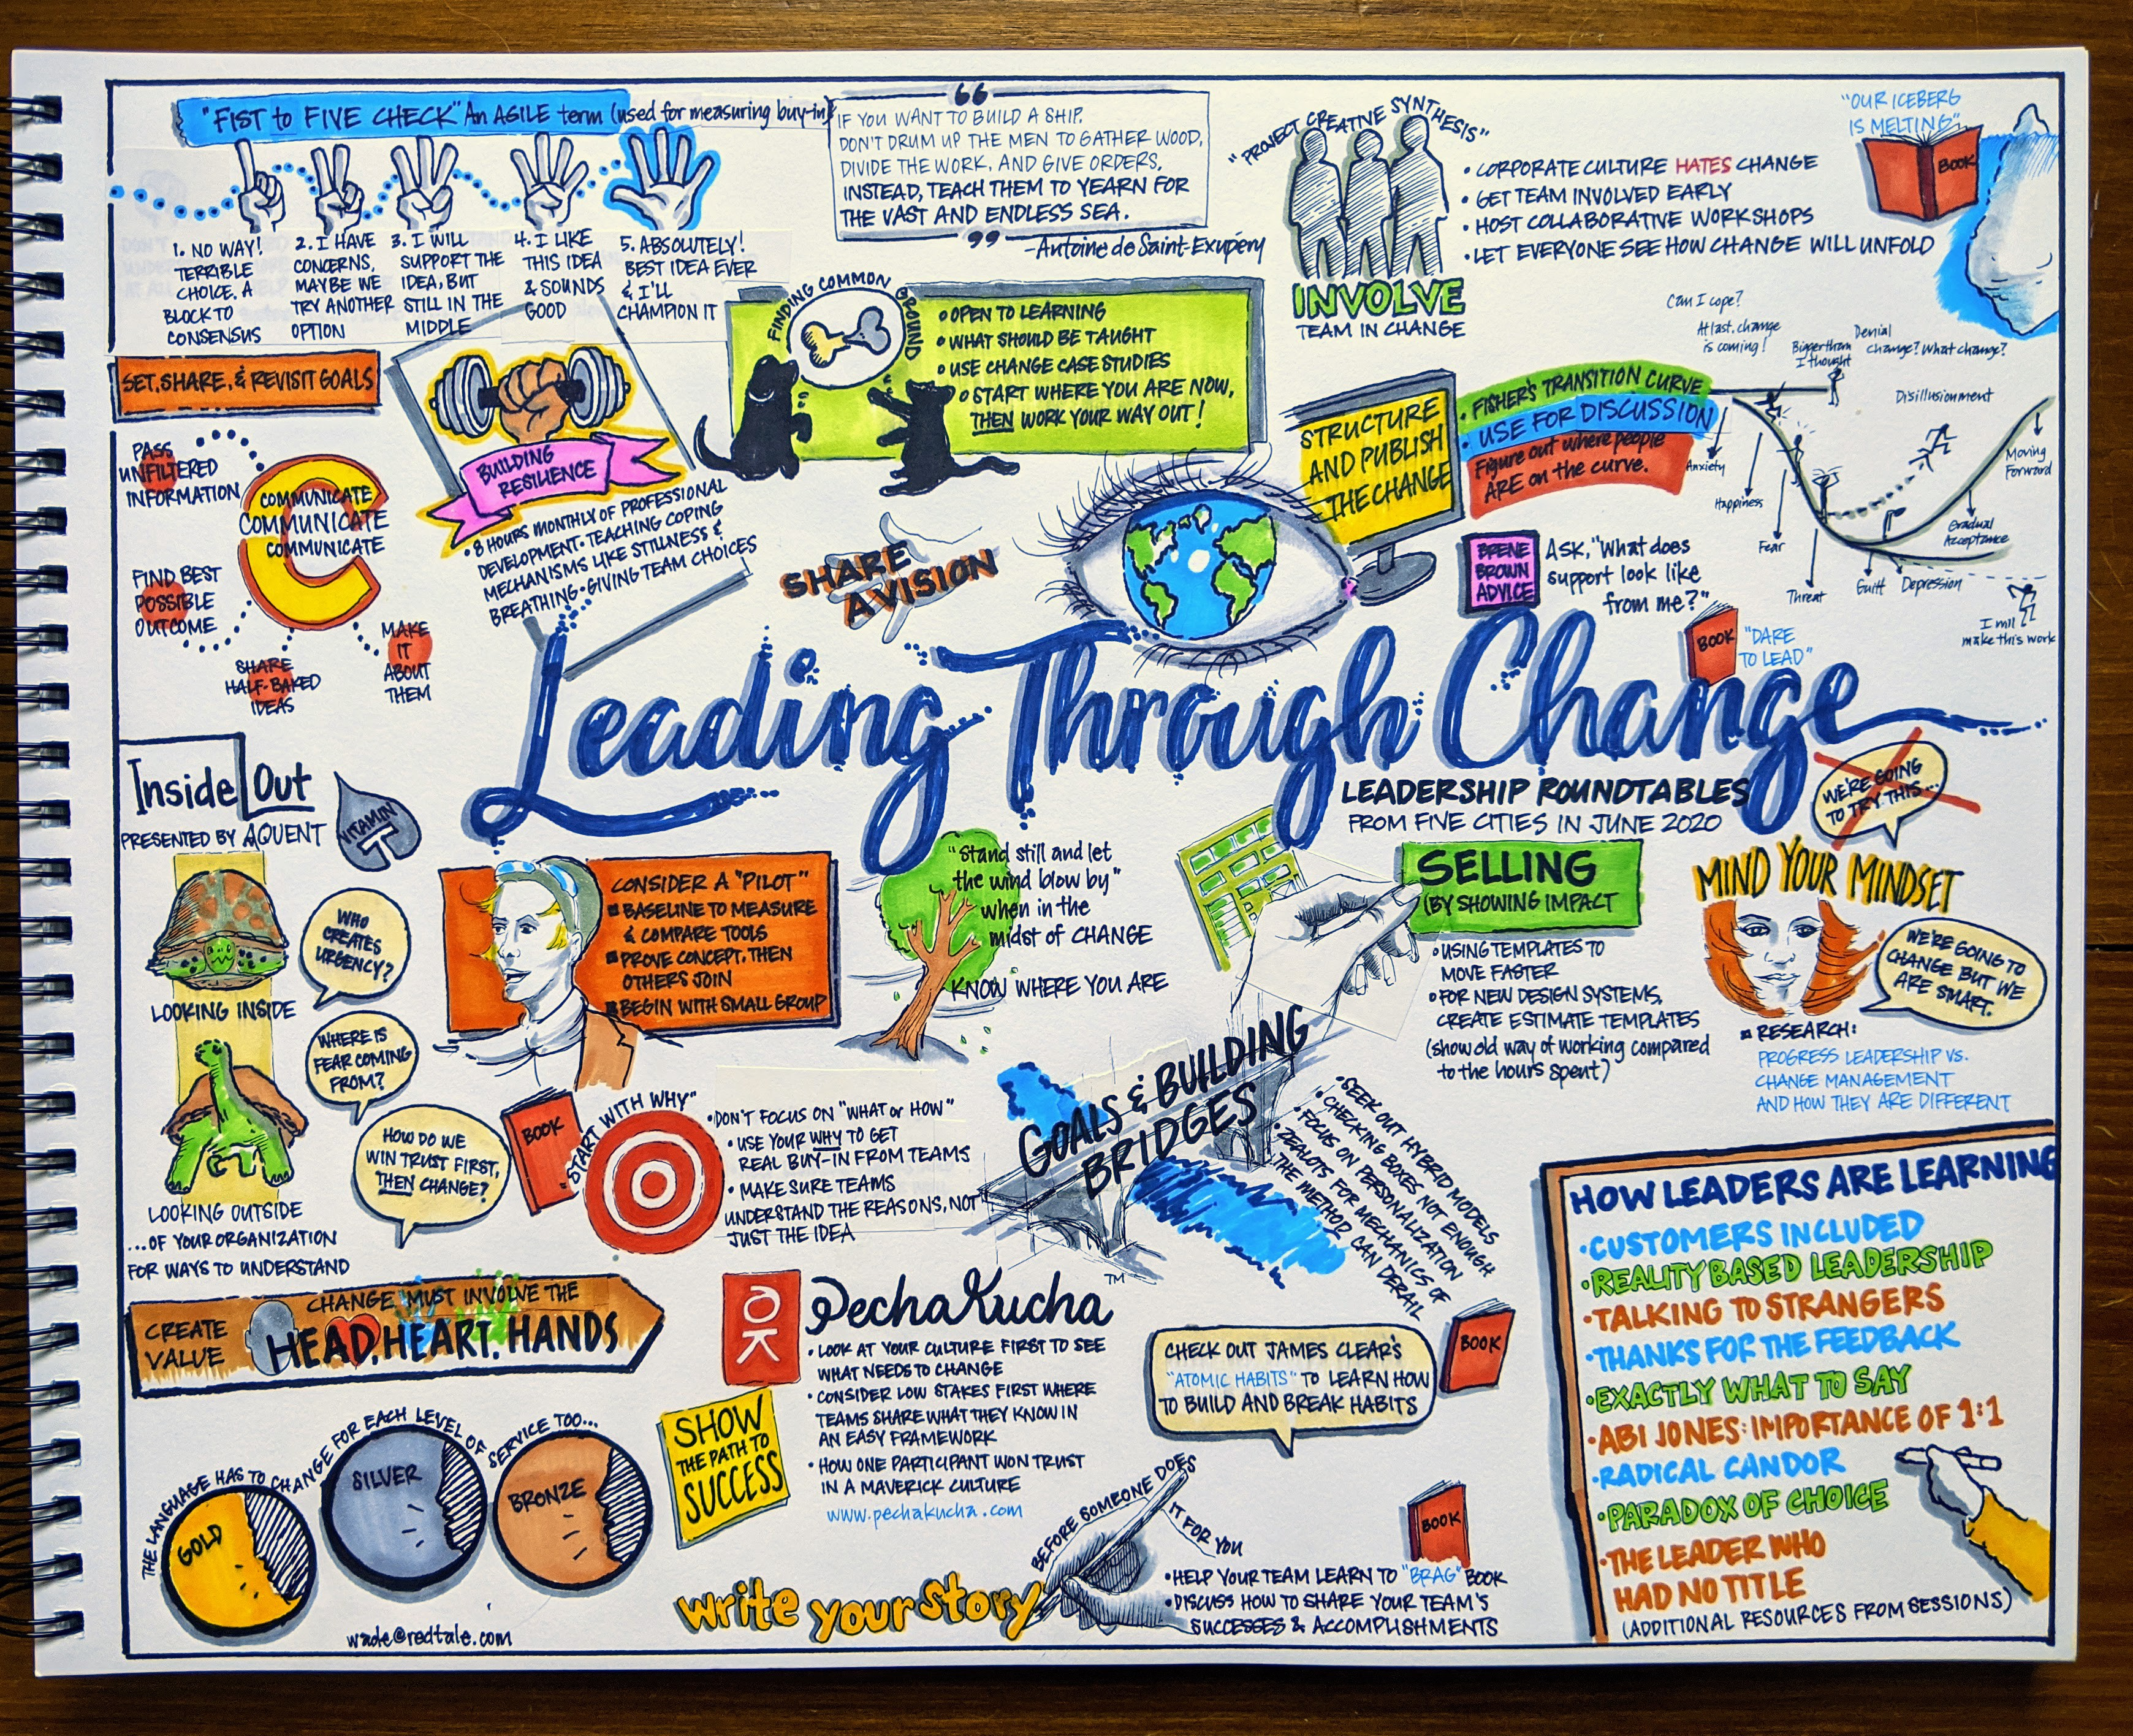 """Sketchnote with drawings that illustrate the points in the article and """"Leading Through Change"""" in the center lettering"""